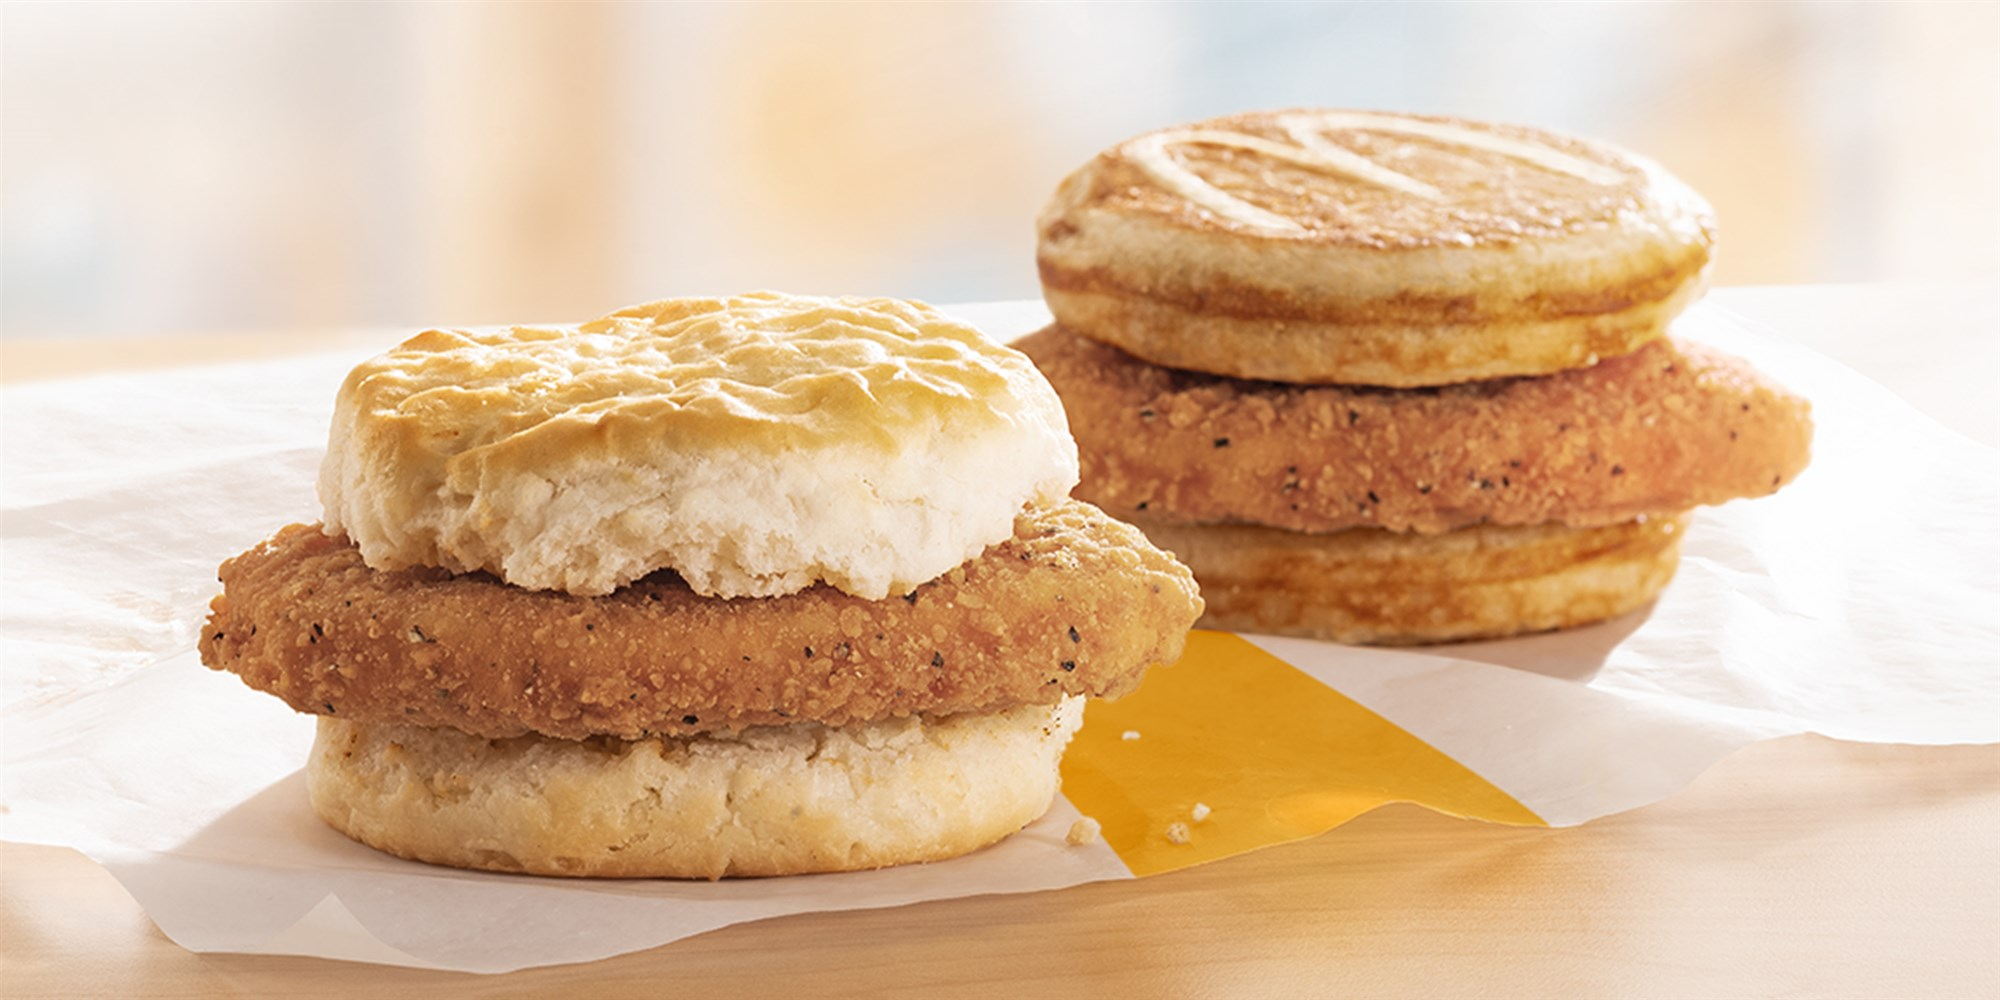 Watch Out, Chick-fil-A! McDonald's Debuts 2 New Chicken Sandwiches